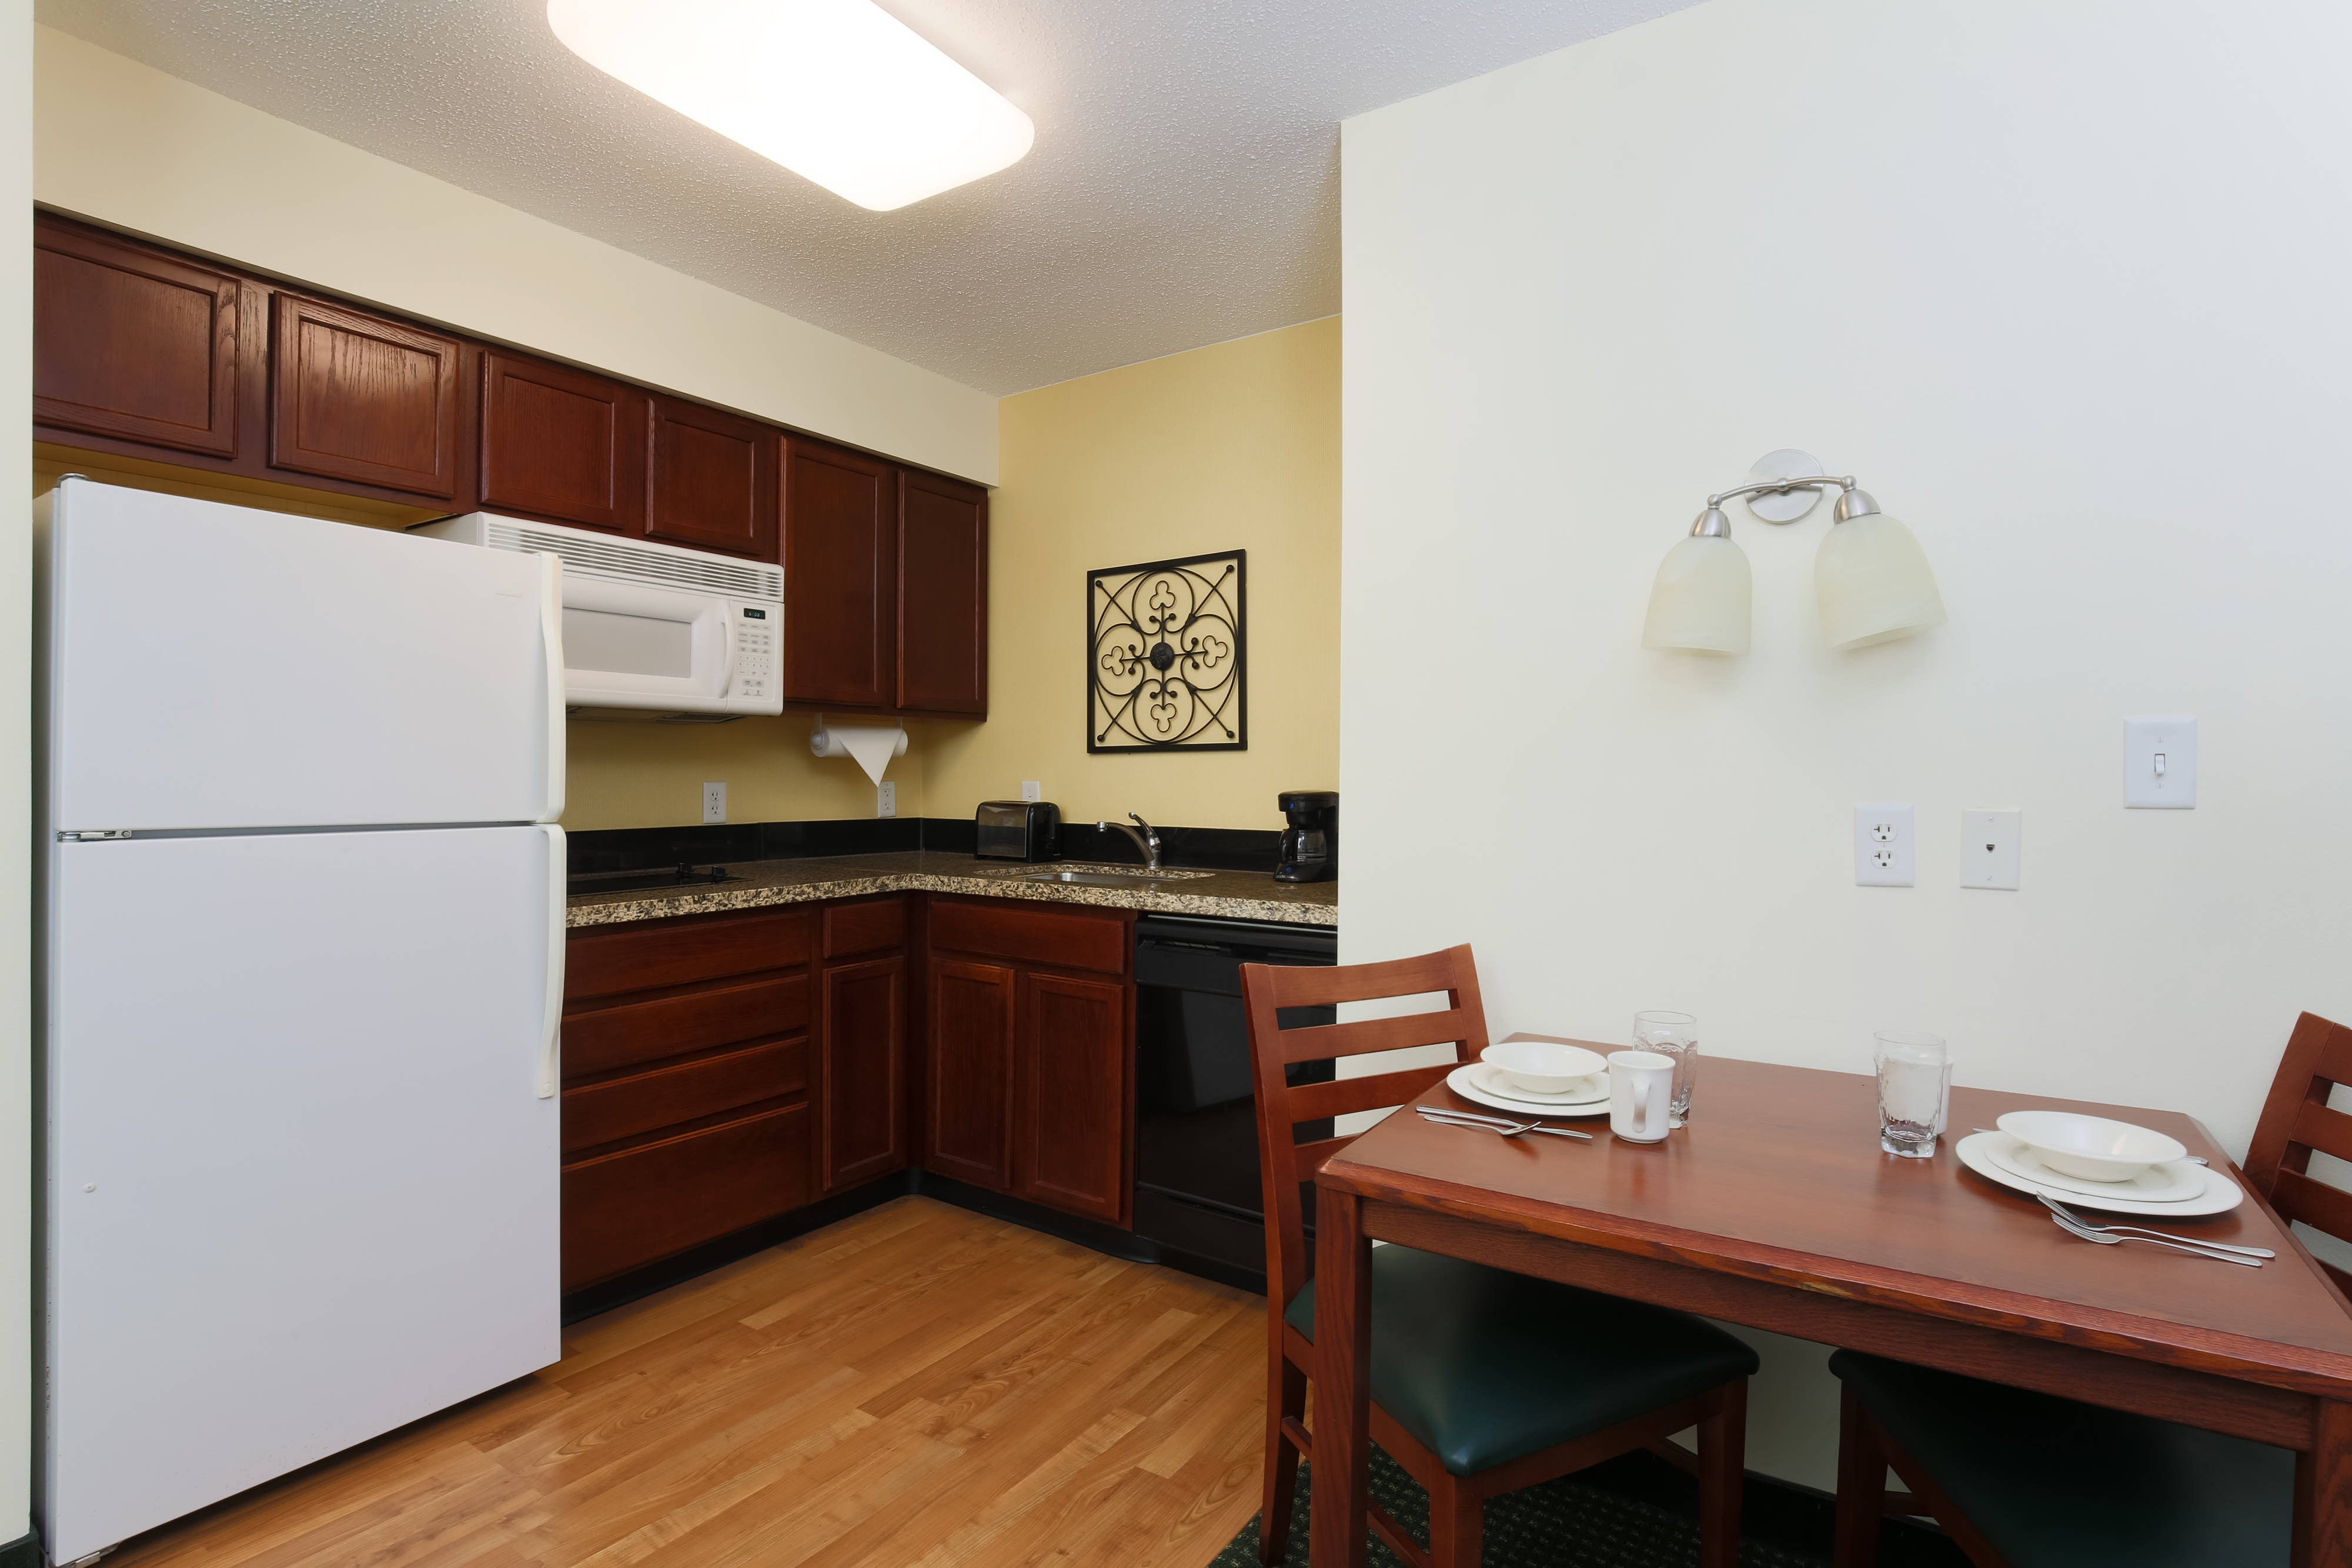 Exton Pennsylvania One-Bedroom Kitchen